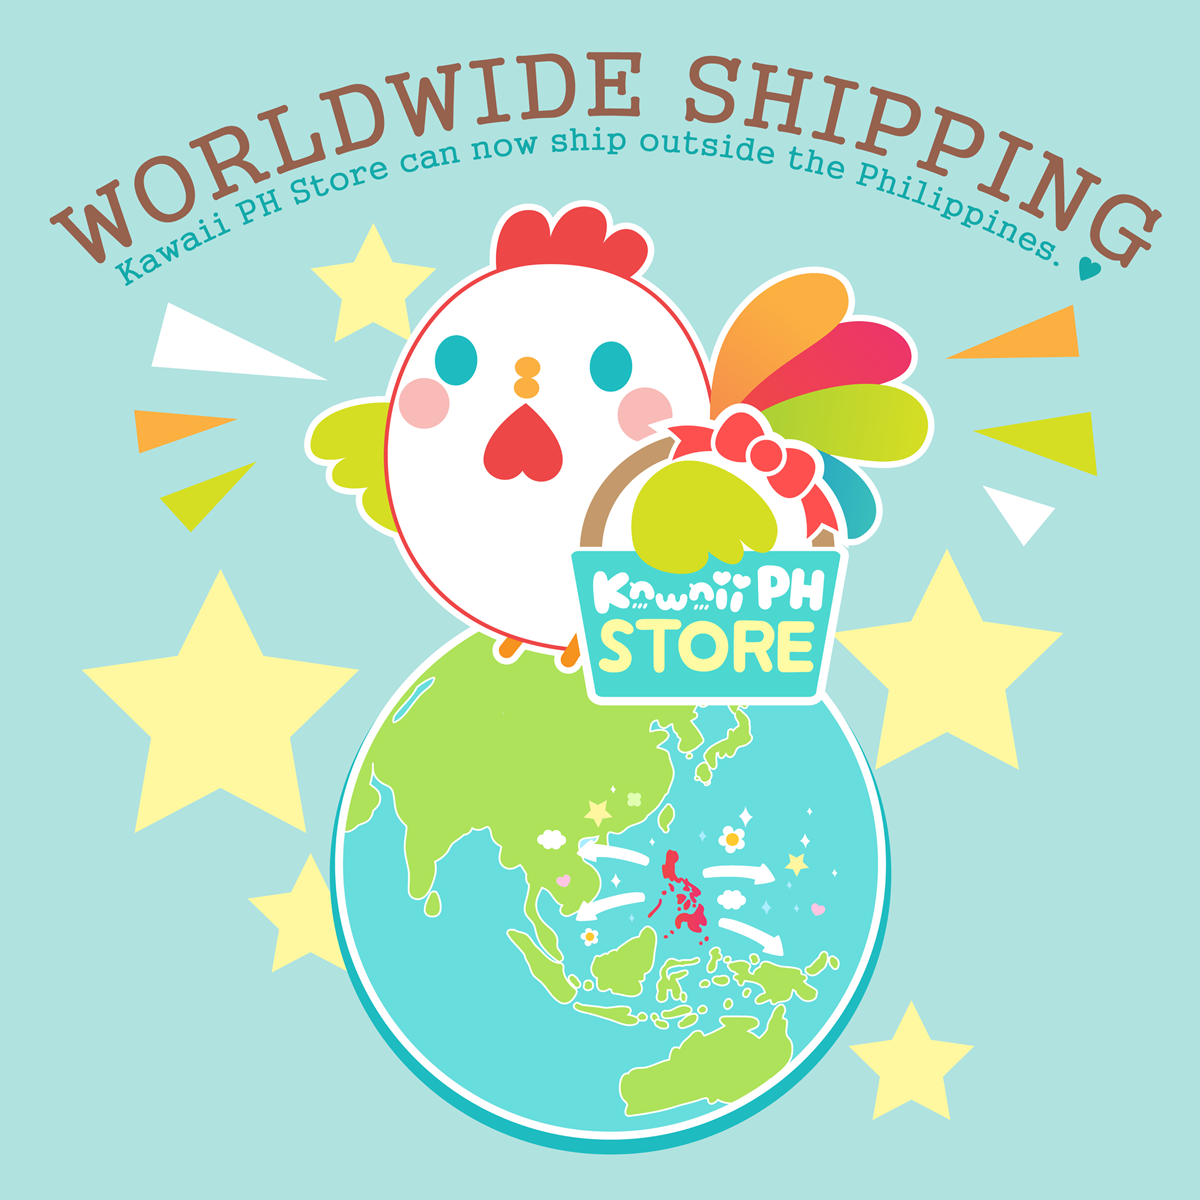 Kawaii PH Store Worldwide Shipping